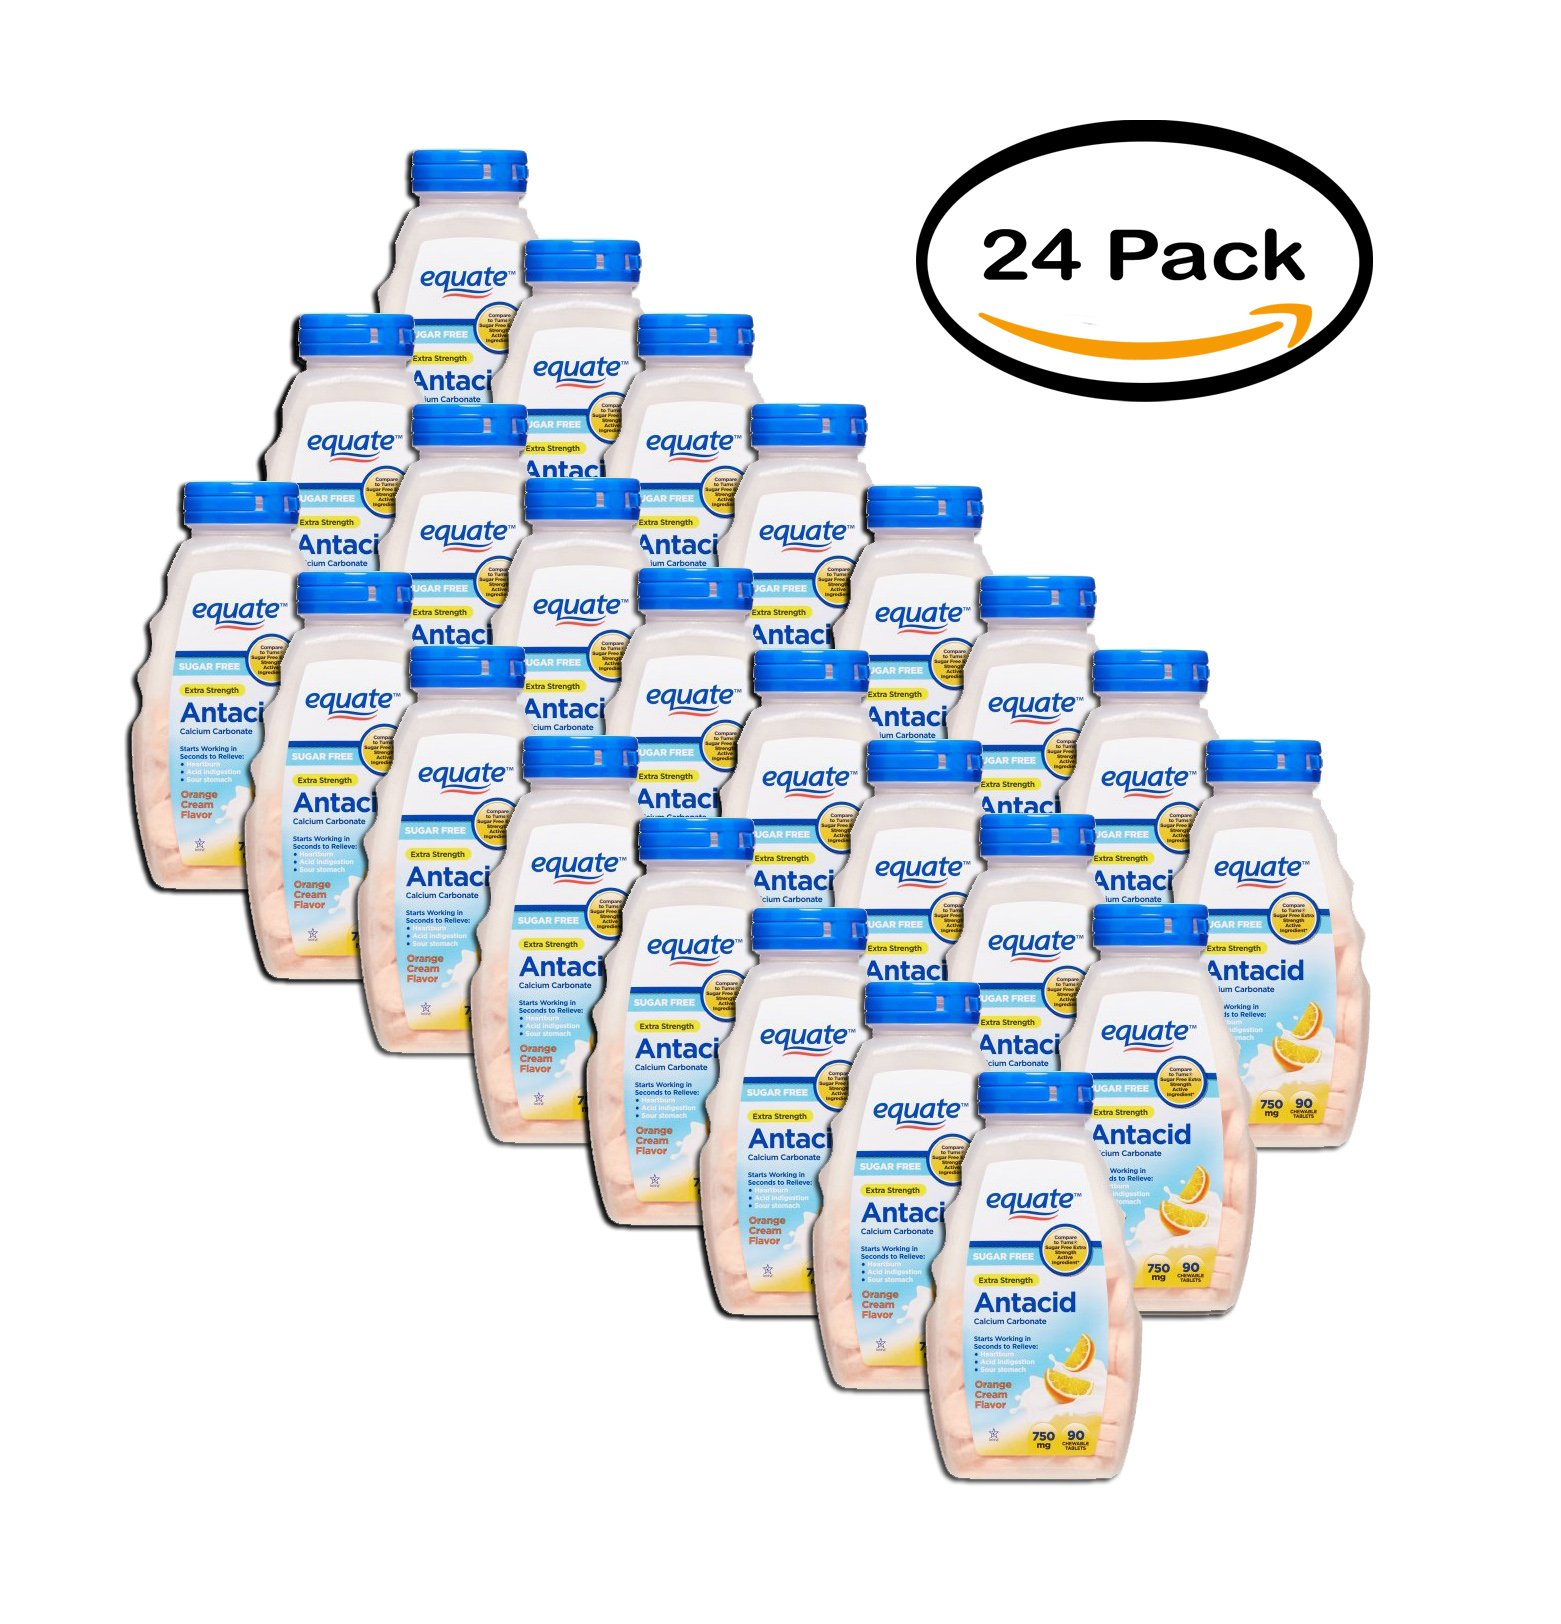 PACK OF 24 - Equate Extra Strength Sugar Free Antacid Chewable Tablets, Orange Cream, 90 Ct by Equate